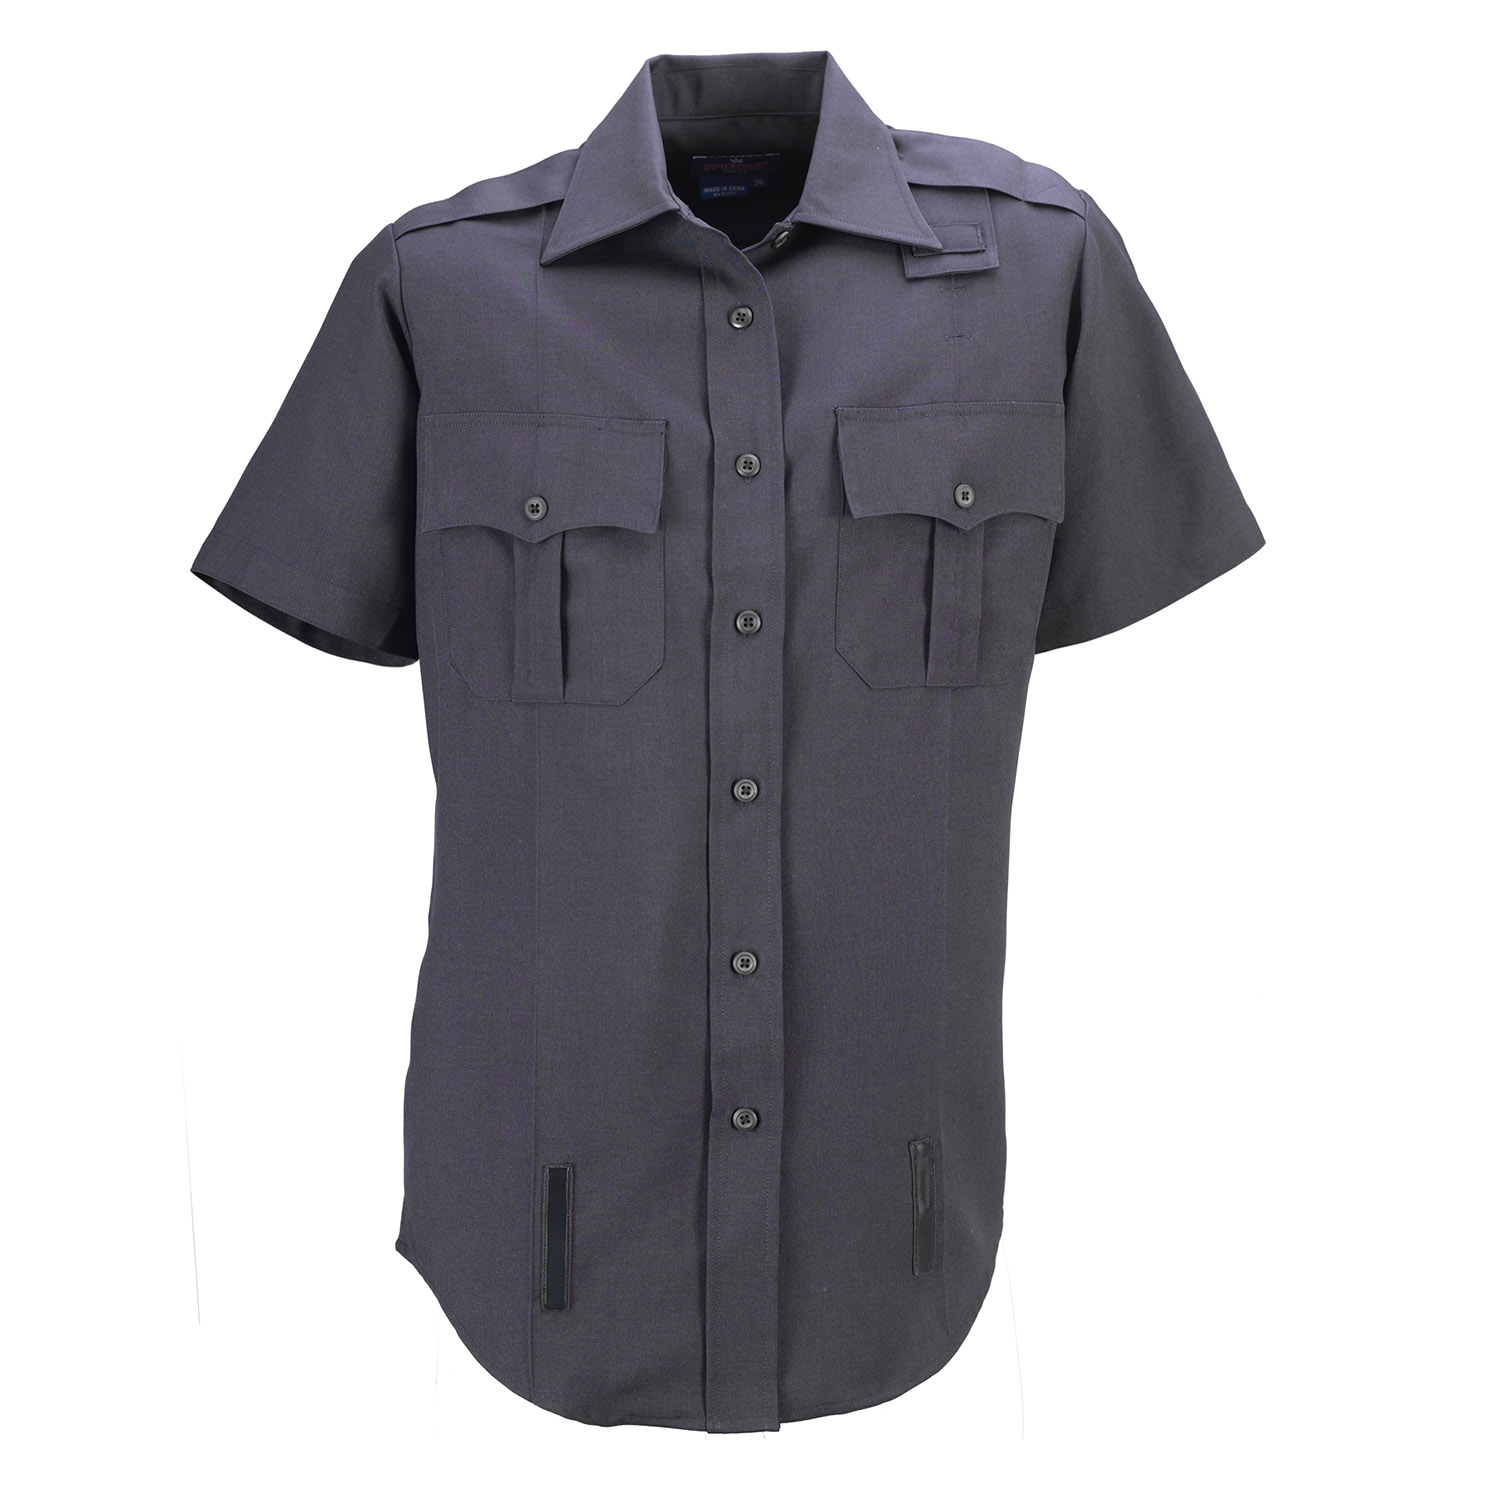 Spiewak Men's Premium Polyester Short Sleeve Performance Dut